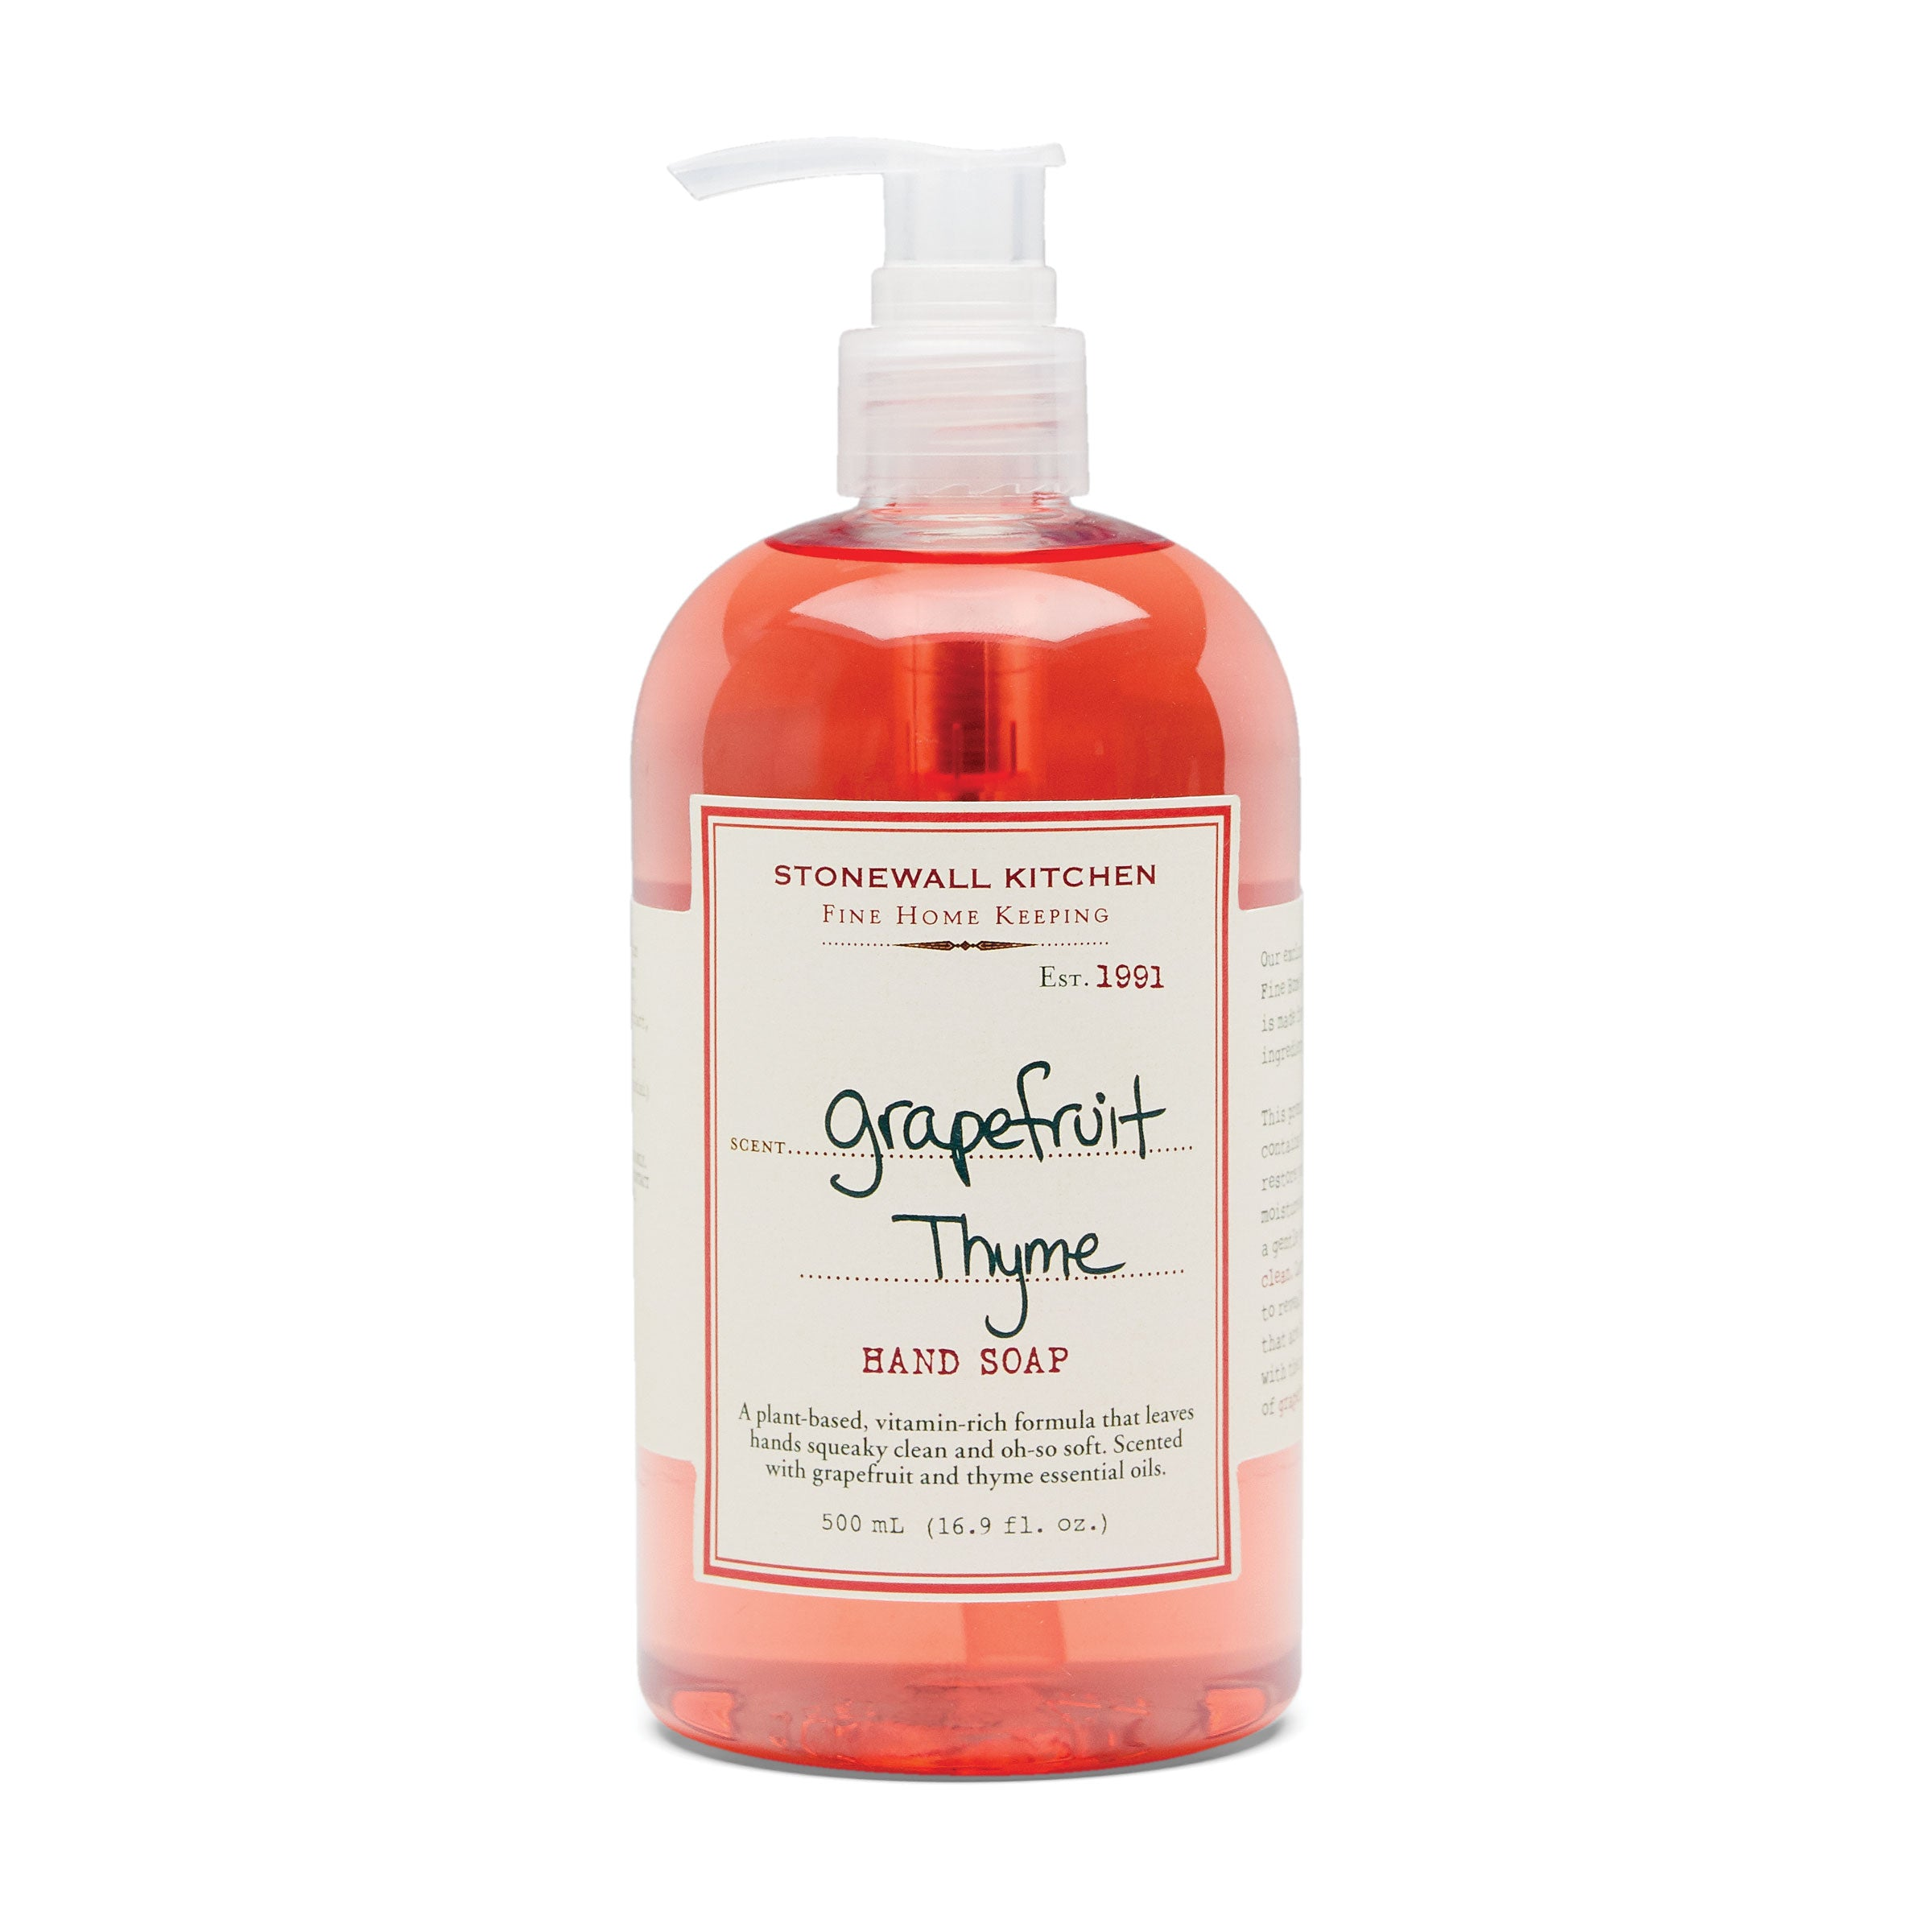 Grapefruit Thyme Hand Soap